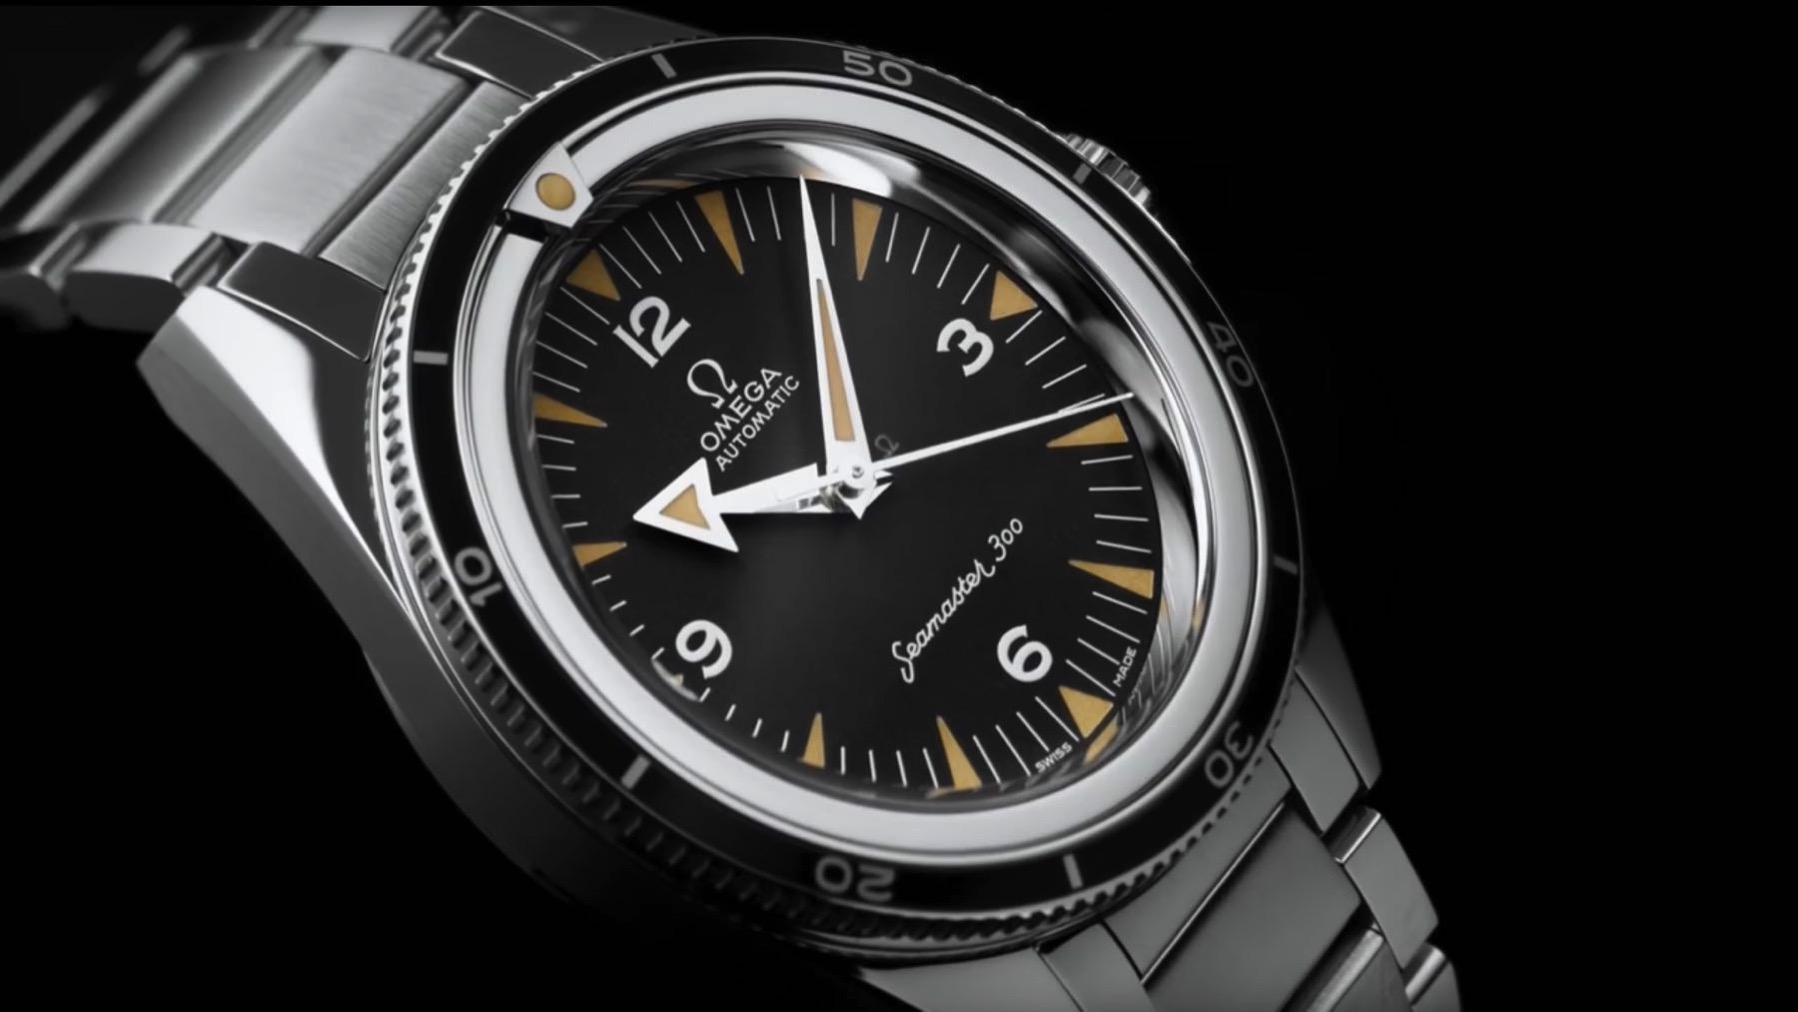 08 OMEGA 1957 Trilogy Limit Edition Seamaster